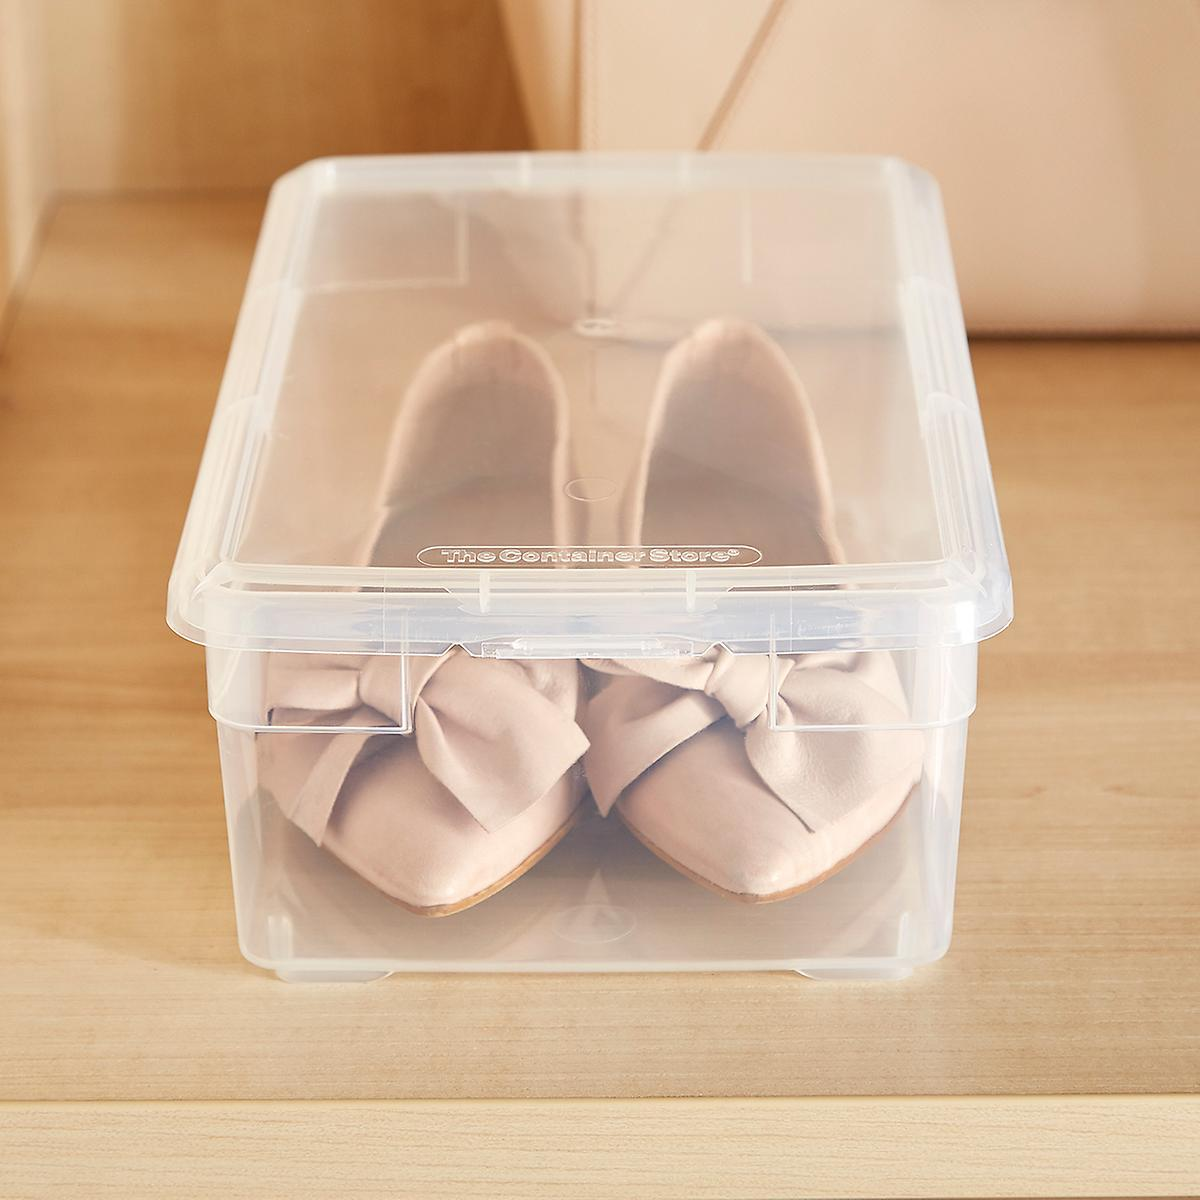 Our Shoe Box Case of 5